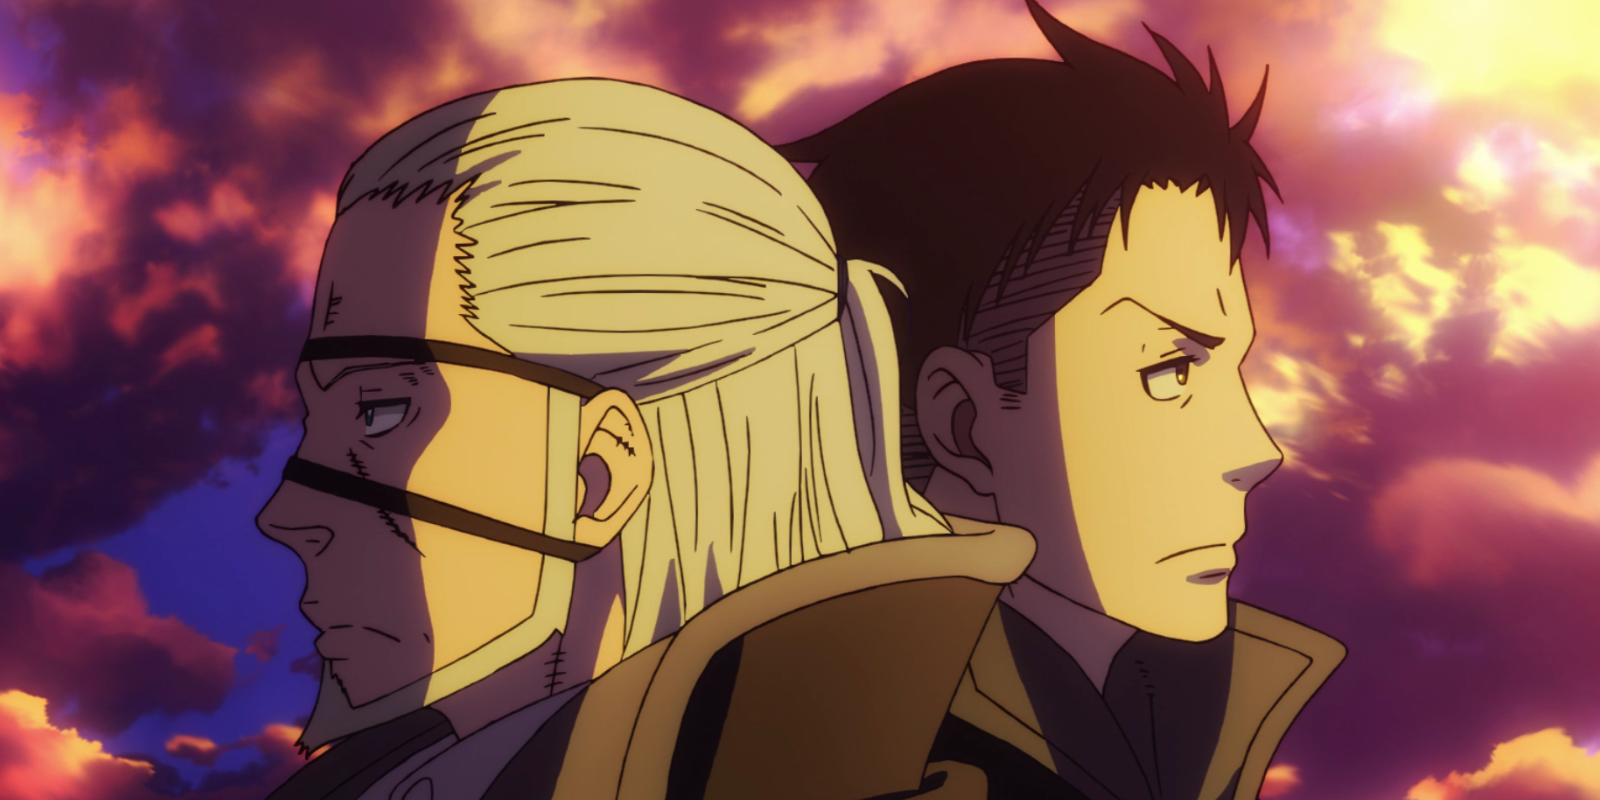 Fire Force Reveals [SPOILER]'s Survival Was Covered Up - But By Who?